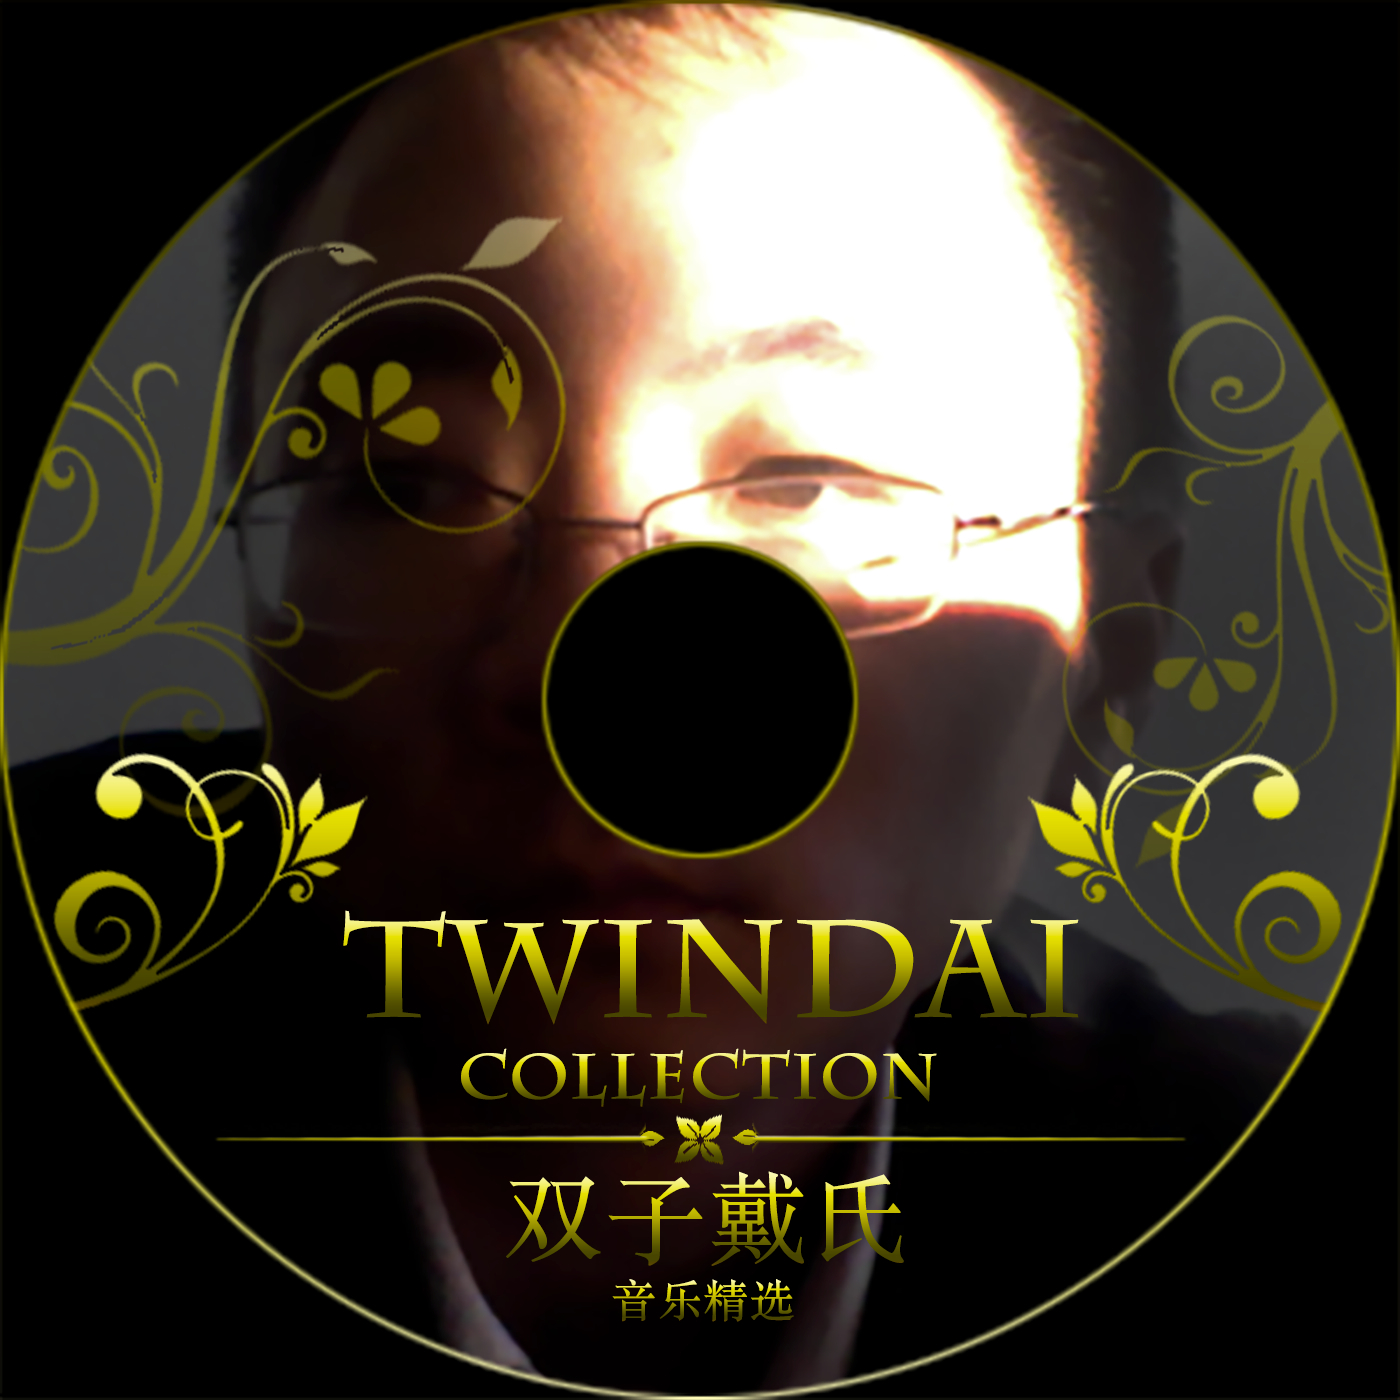 Twindai collection